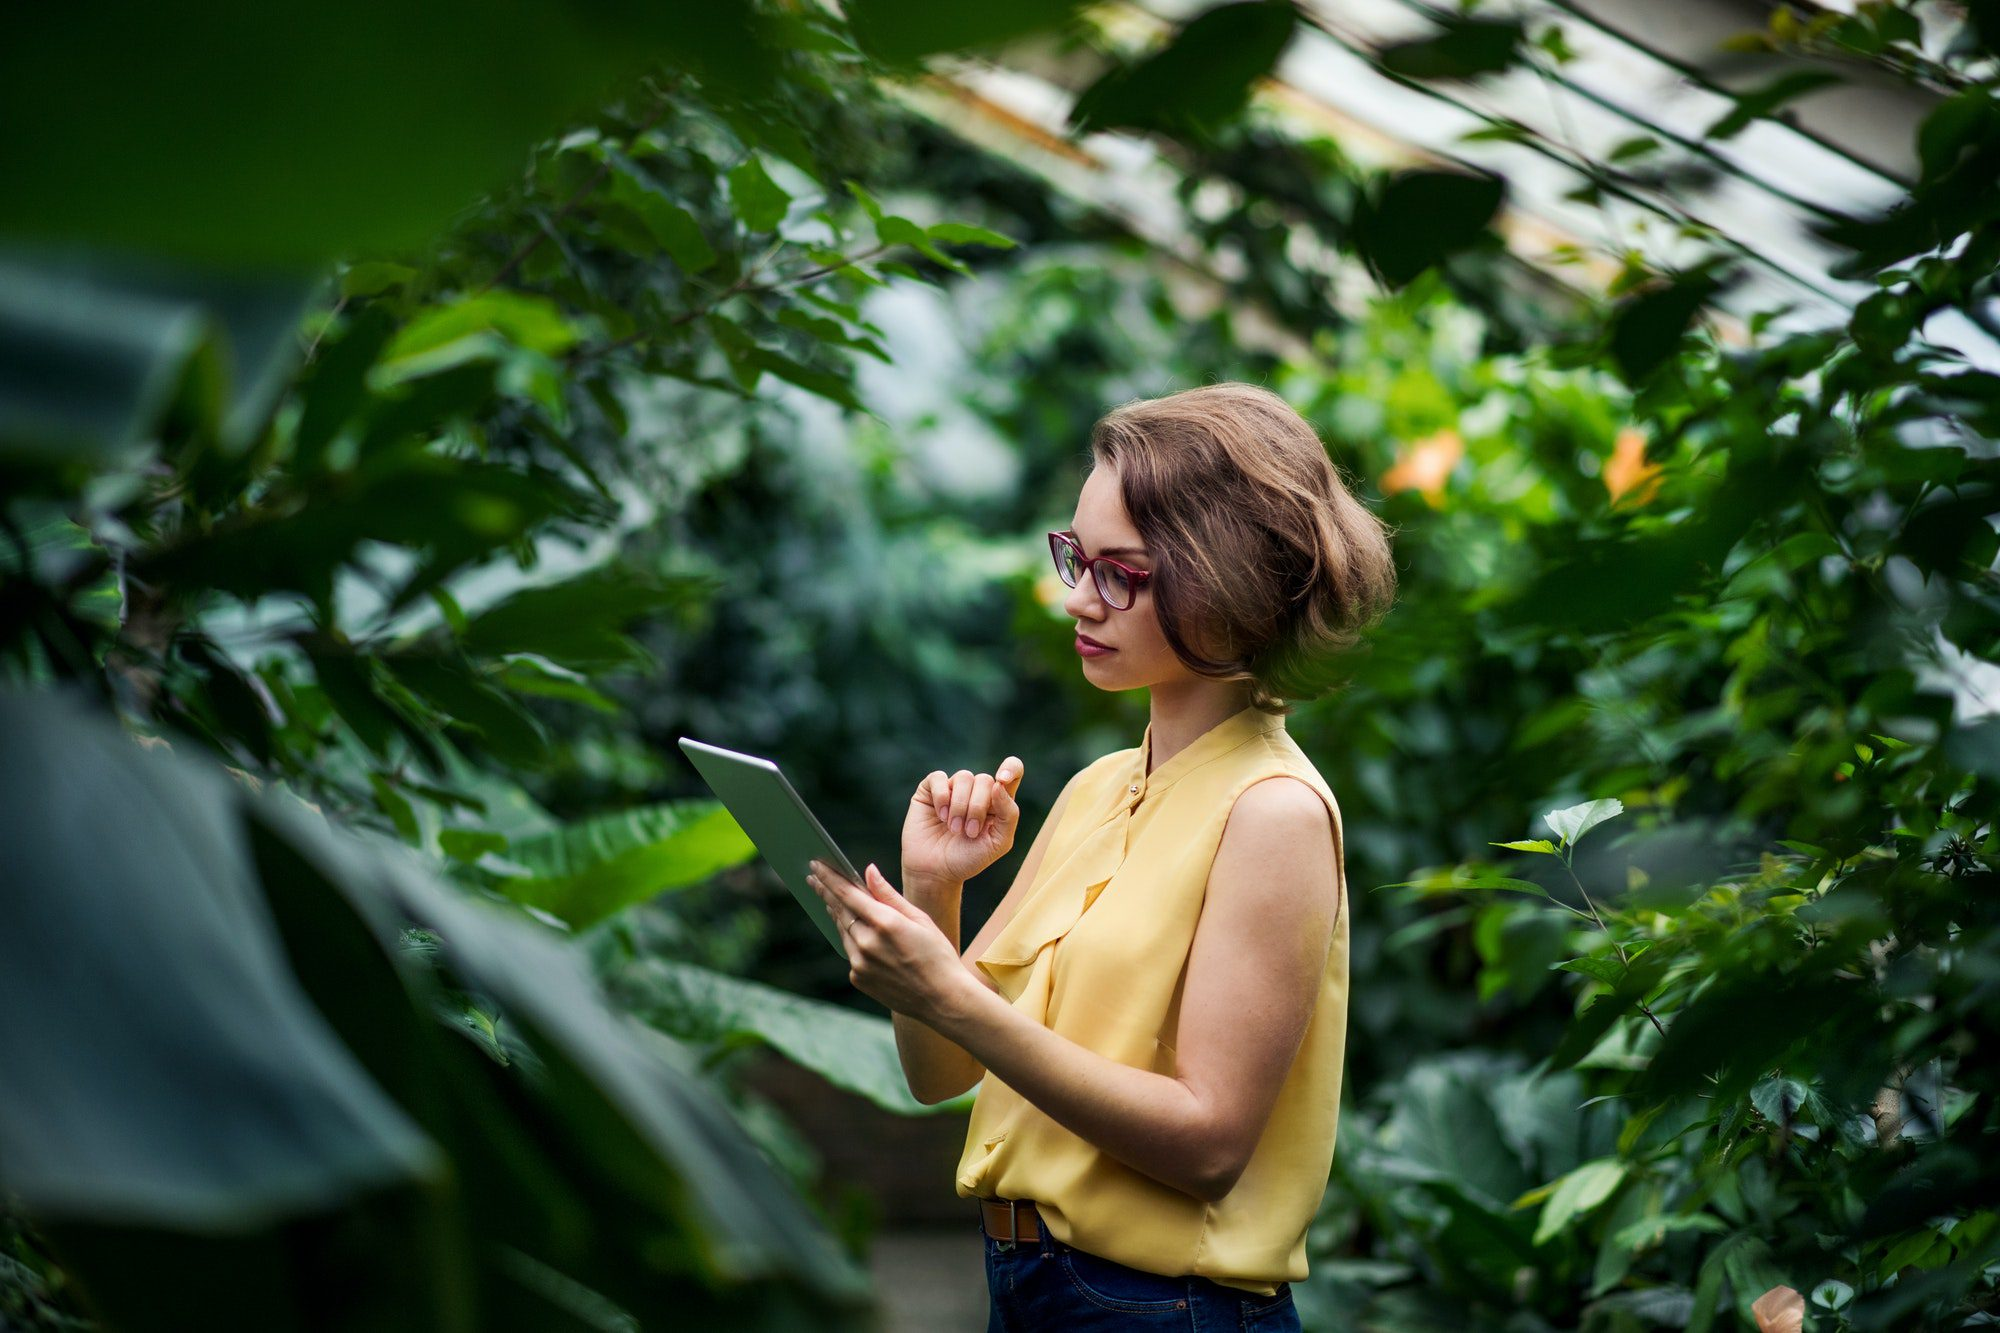 Young woman standing in greenhouse in botanical garden, using tablet